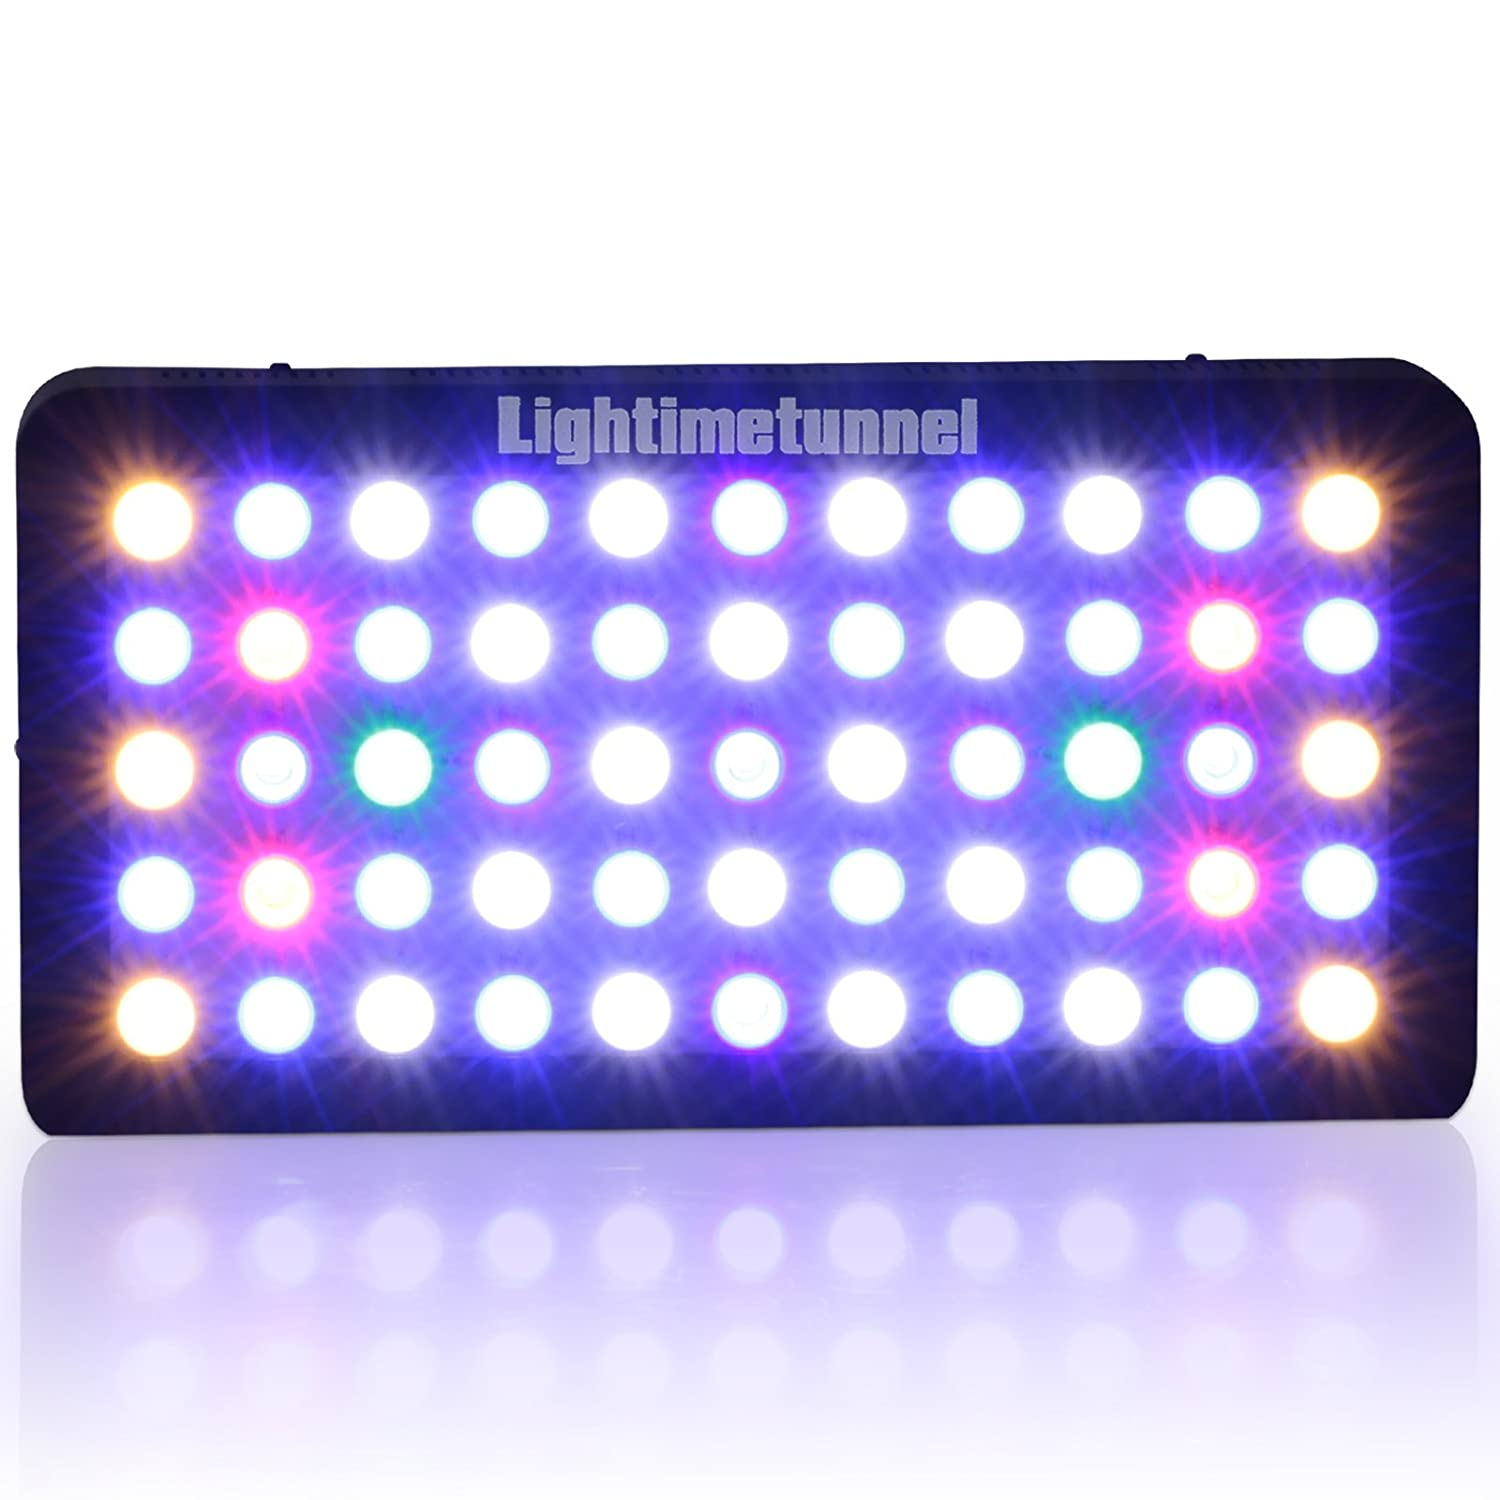 Aquarium lighting for plants - Amazon Com Lightimetunnel 165w Led Aquarium Light Full Spectrum Dimmable Hood Lighting For Lps Sps Coral Reef Fish Tank Pet Supplies